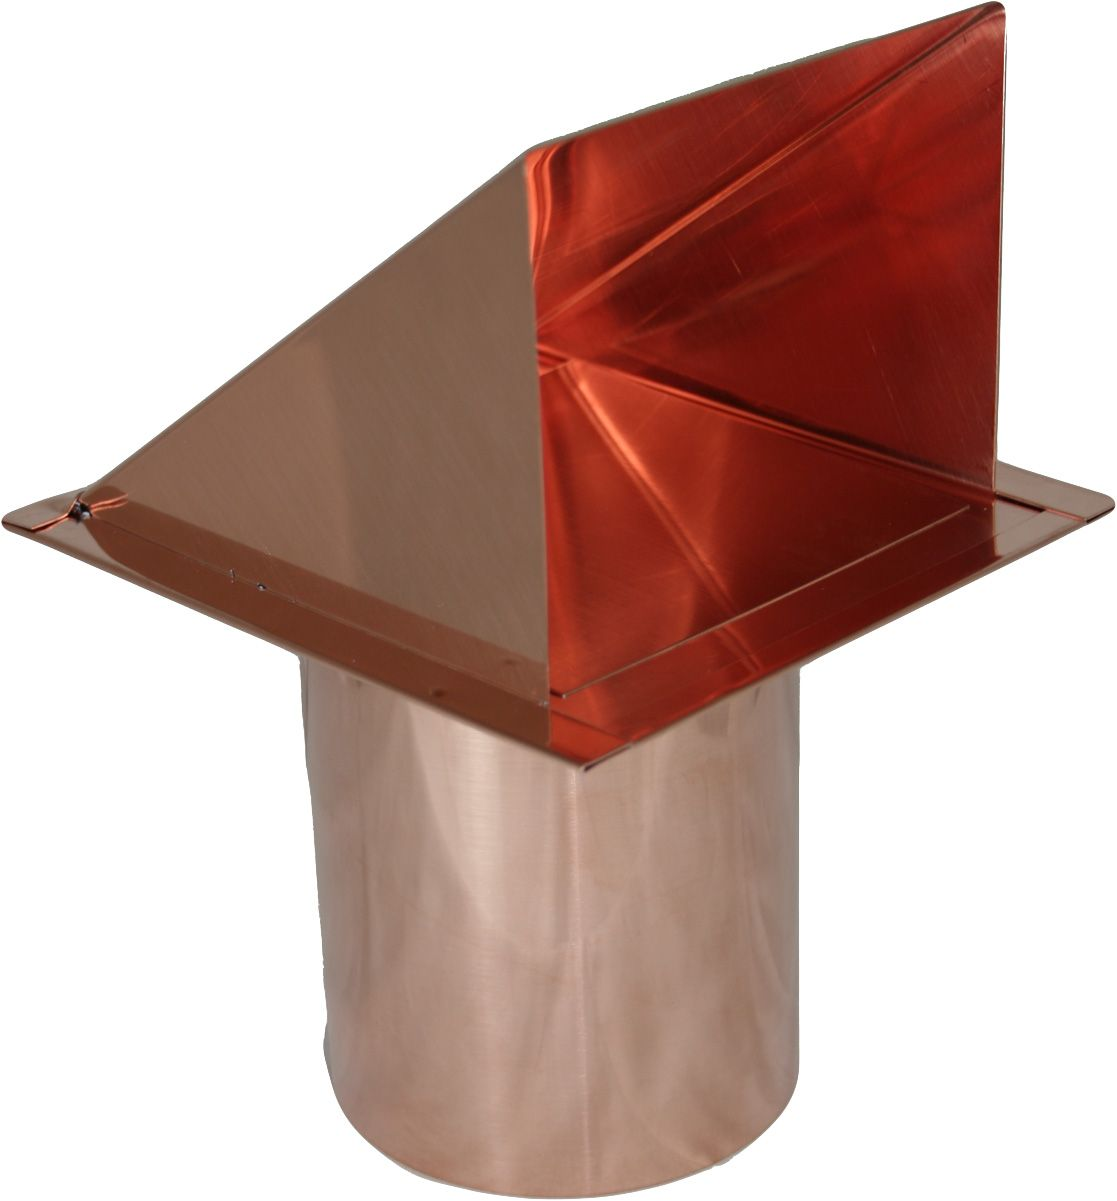 Copper 4 Inch Dryer Vent Cap With Damper Wall Vents Copper Wall Dryer Vent